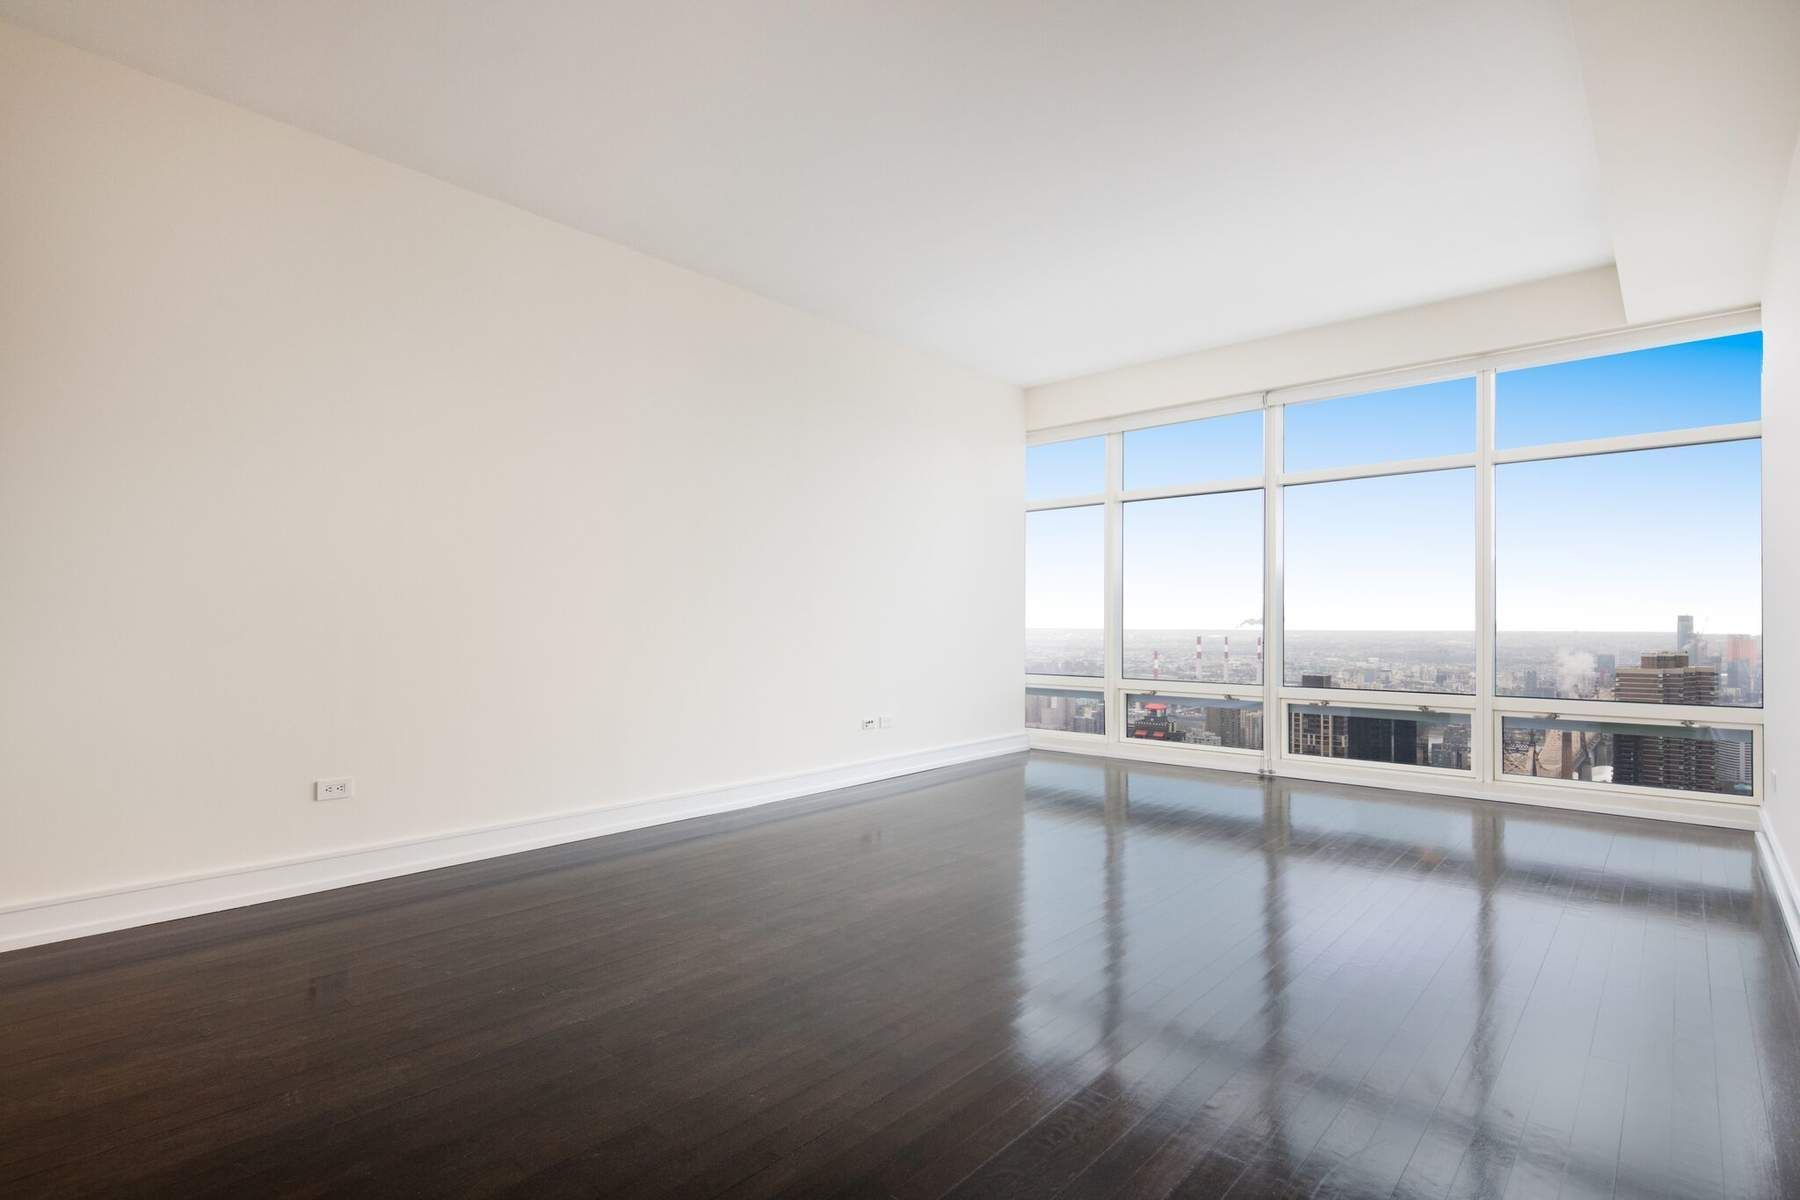 NO BROKER FEE / BROKERS CYOFHigh floor two bedrooms, two bathrooms and a powder room at One Beacon Court Condominium offers approx. 1,364 sq. ft. of the gorgeous sun-flooded eastern exposure with stunning East River views through floor-to-ceiling windows. Residence 39C features 10 ft. high ceilings, hardwood floors throughout, and washer/dryer in the unit. The living room is spacious, ideal for relaxing and entertaining. A chef's kitchen featuring beautiful lacquered cabinetry, top-of-the-line appliances, and stone countertop. A master suite features a marble bath with mosaic marble floor, white marble vanity with double sink, soaking tub, separate shower and large walk-in closet. There is a secondary bedroom with an en-suite bathroom and a large closet.One Beacon Court was designed by the renowned Architect, Cesar Pelli and is a modern classic, with an elliptical shaped courtyard, inspired by the shape of the Pantheon in Rome. A full service building with full time doorman, concierge, and security, on-site resident manager, state-of-the-art fitness room and lounge on the 29th floor. Located minutes from Central Park, Fifth Avenue and Madison Avenue fine shopping, dining and midtown business centers.Available to show Monday through Friday from 10AM to 4PM. No-showing on Saturday and Sunday.